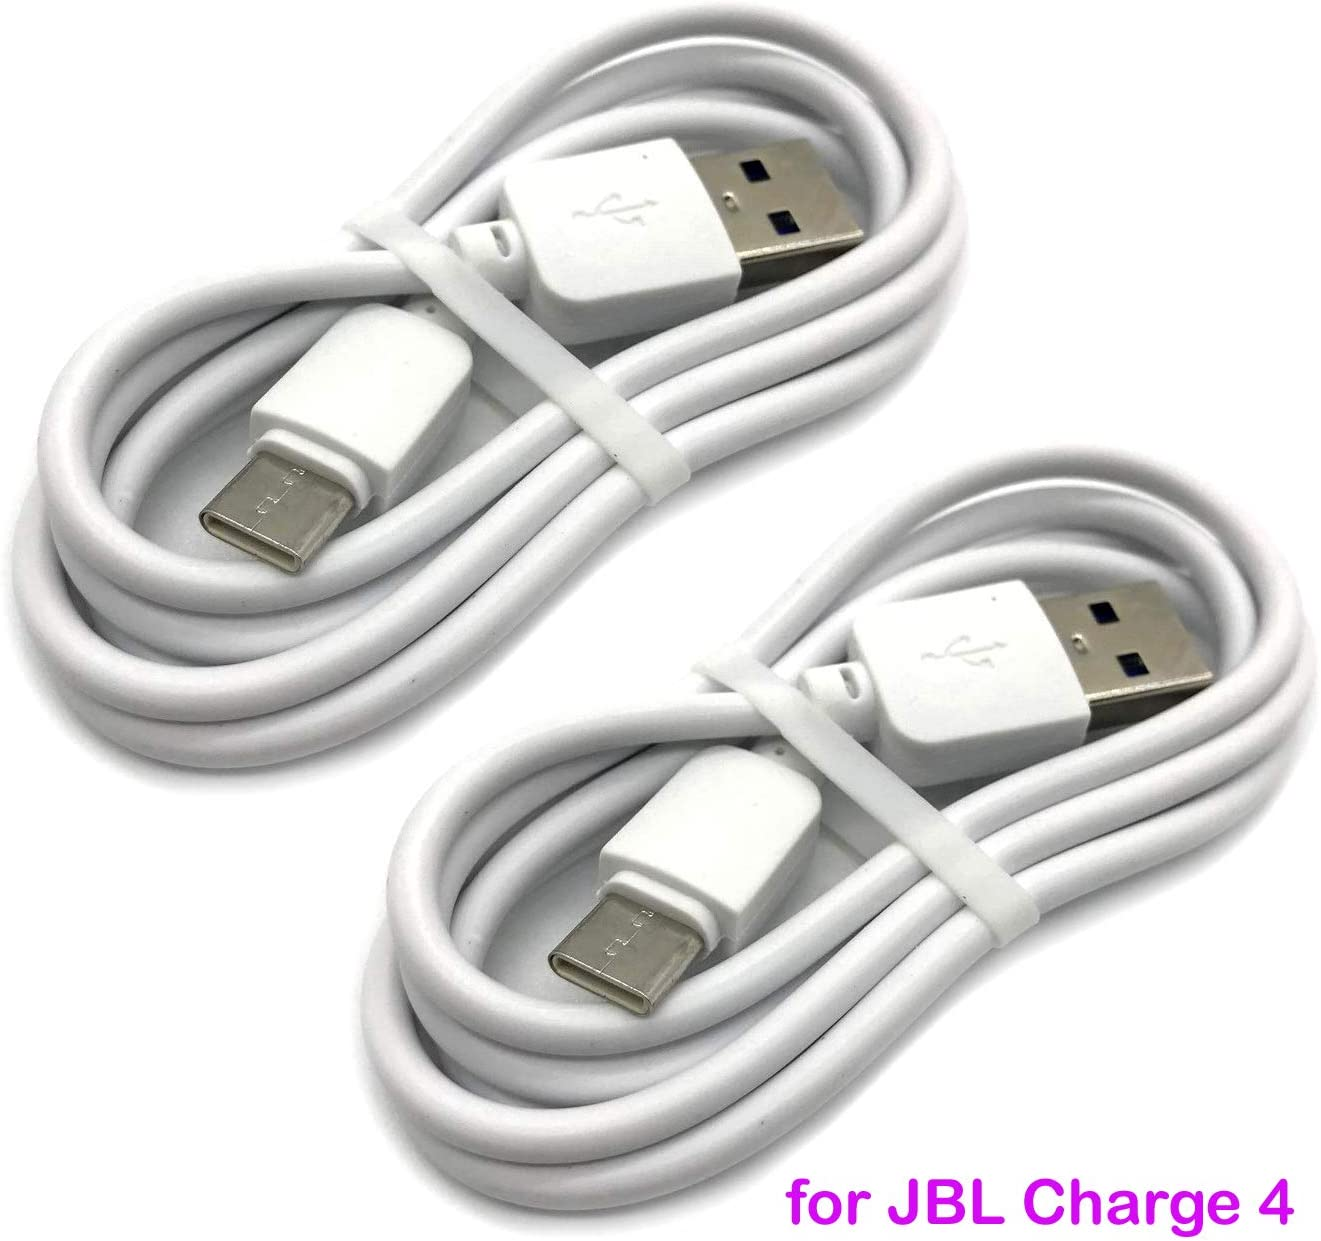 Samsung Galaxy S10 2PACK Jr Pop Speaker DGSUS JBL Flip 5 Endurance Peak Portable Wireless Bluetooth Speaker Type C Power Cord Charger Cable Replacement fit for JBL Charge 4